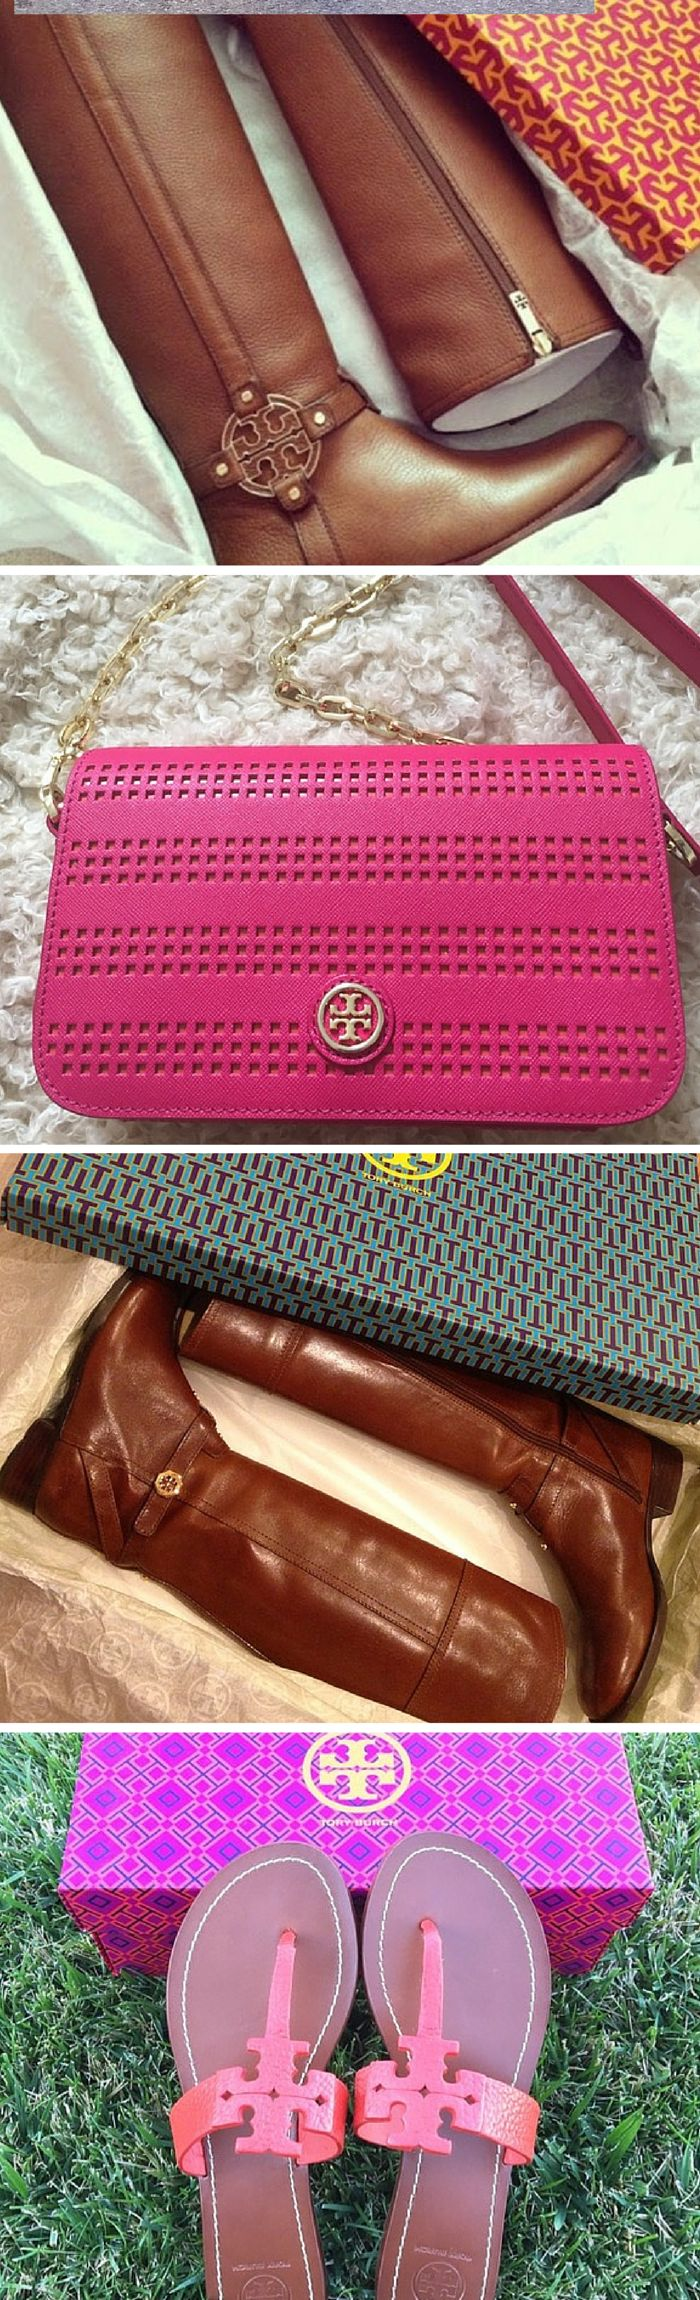 Buy Tory Burch, MAC, Michael Kors and other brands up to 70% off! Click image to install the FREE app now. Featured in MTV News & Good Morning America.